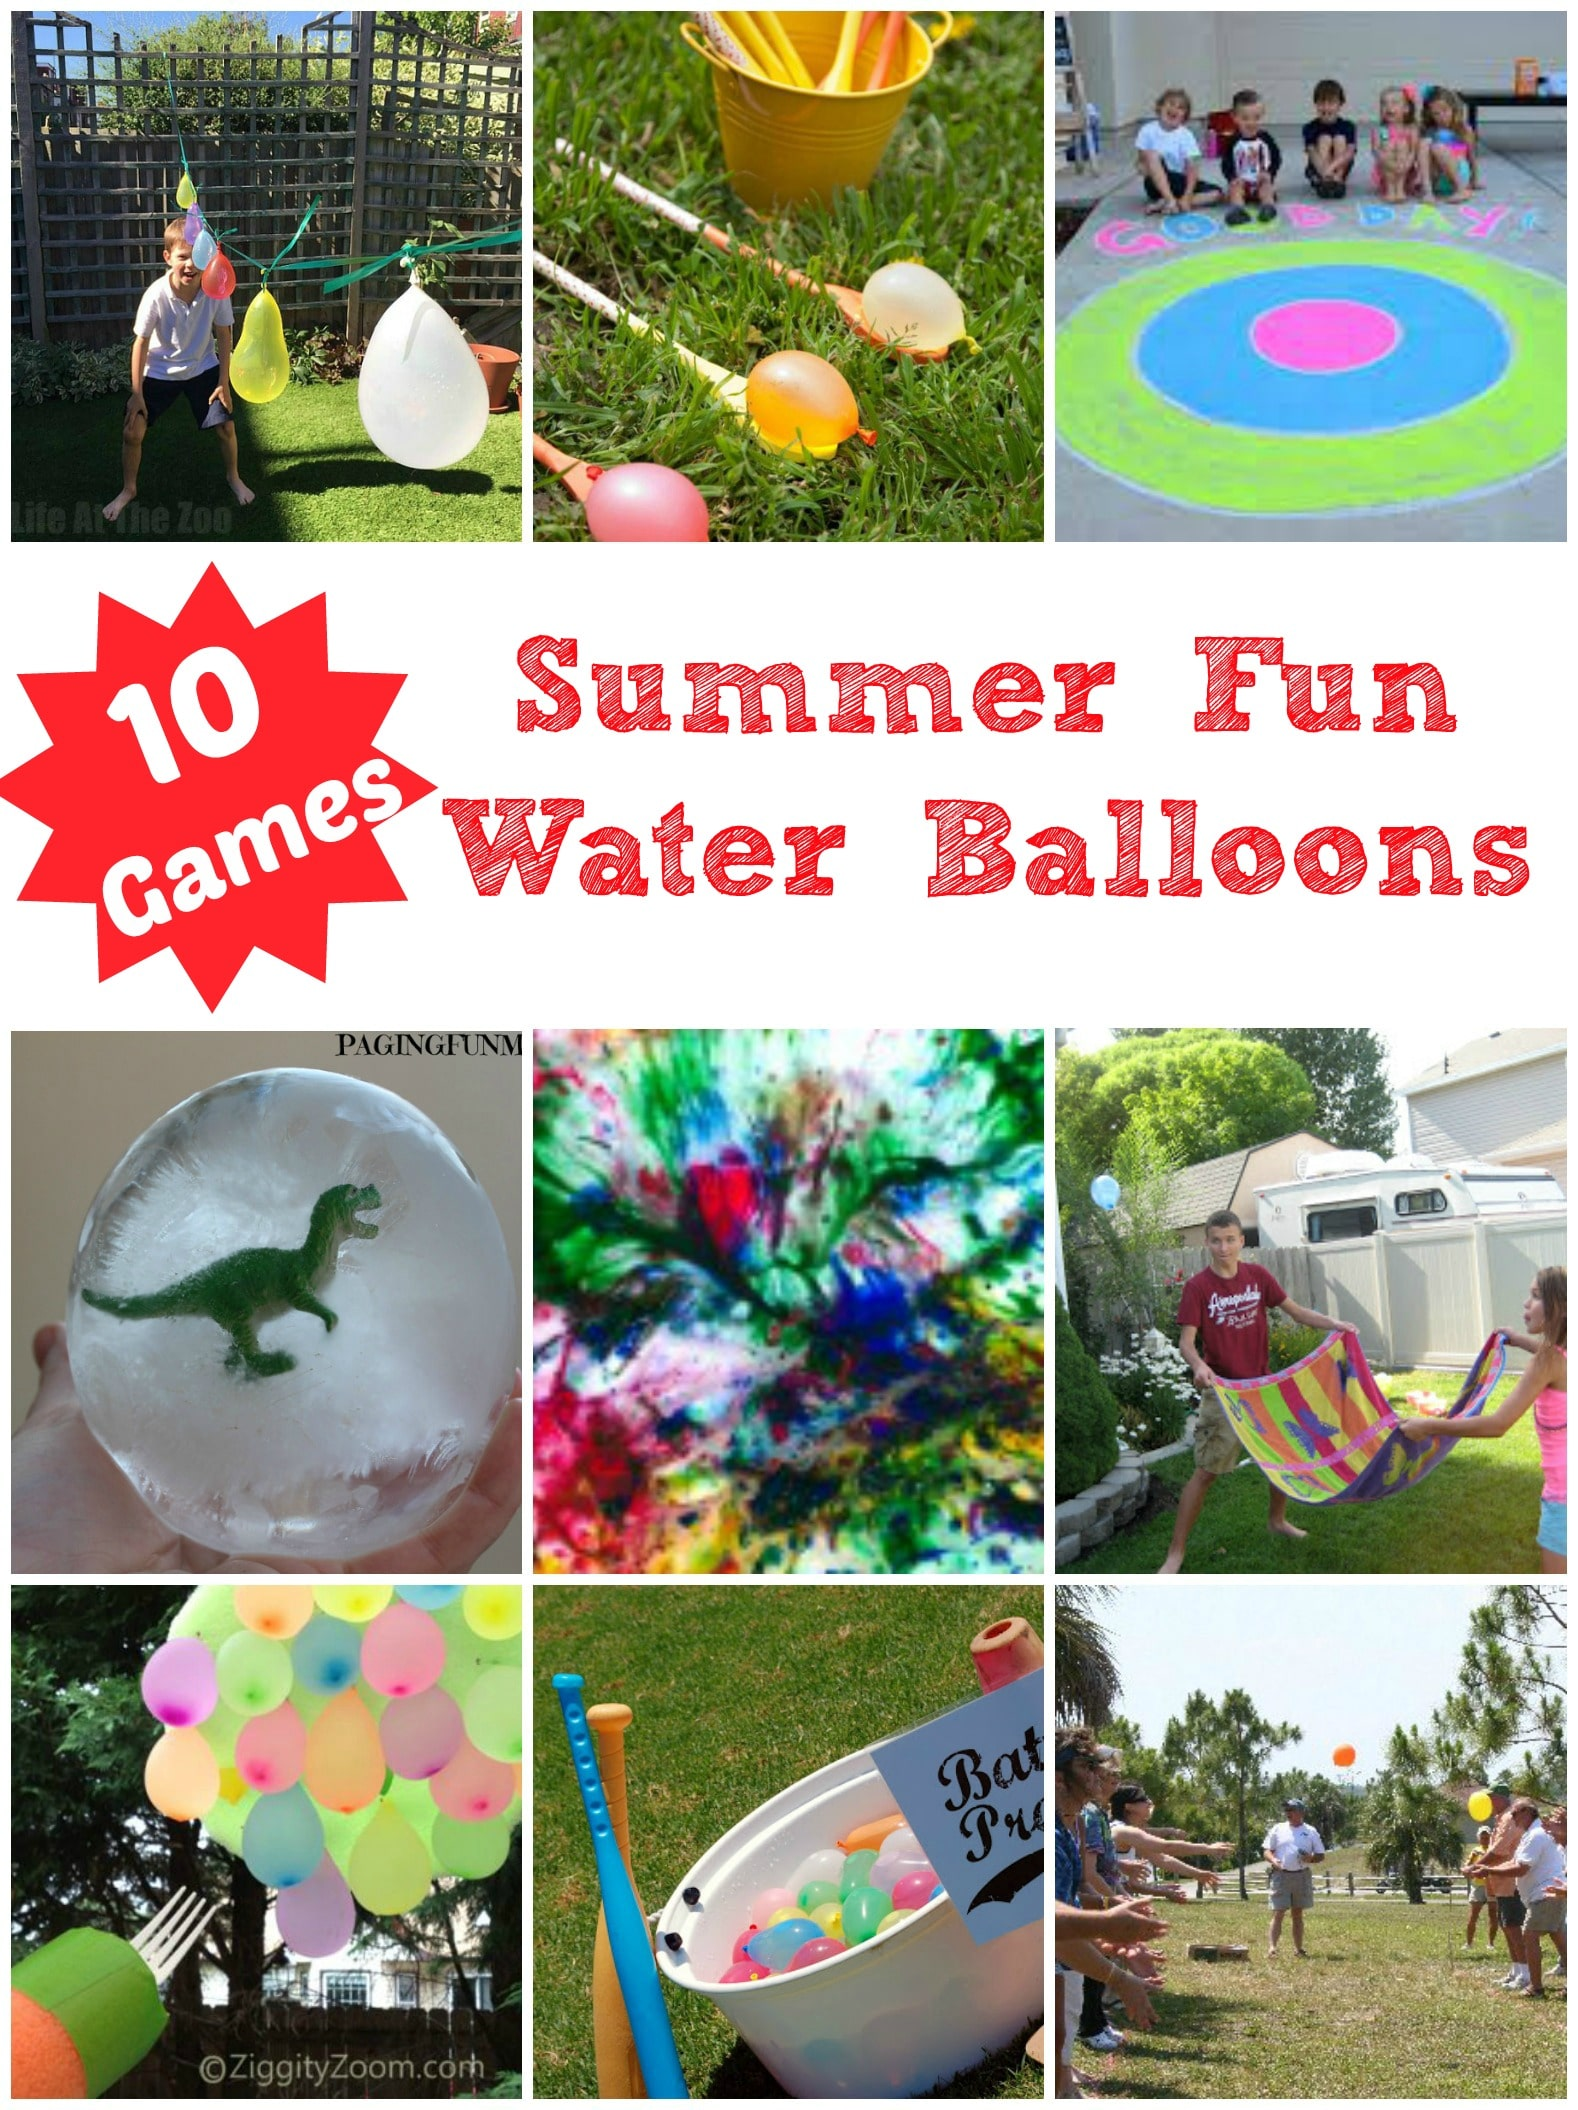 10 Super Fun Water Balloon Games - this is what SUMMER FUN is all about. The kids will have a blast and cool down at the same time!